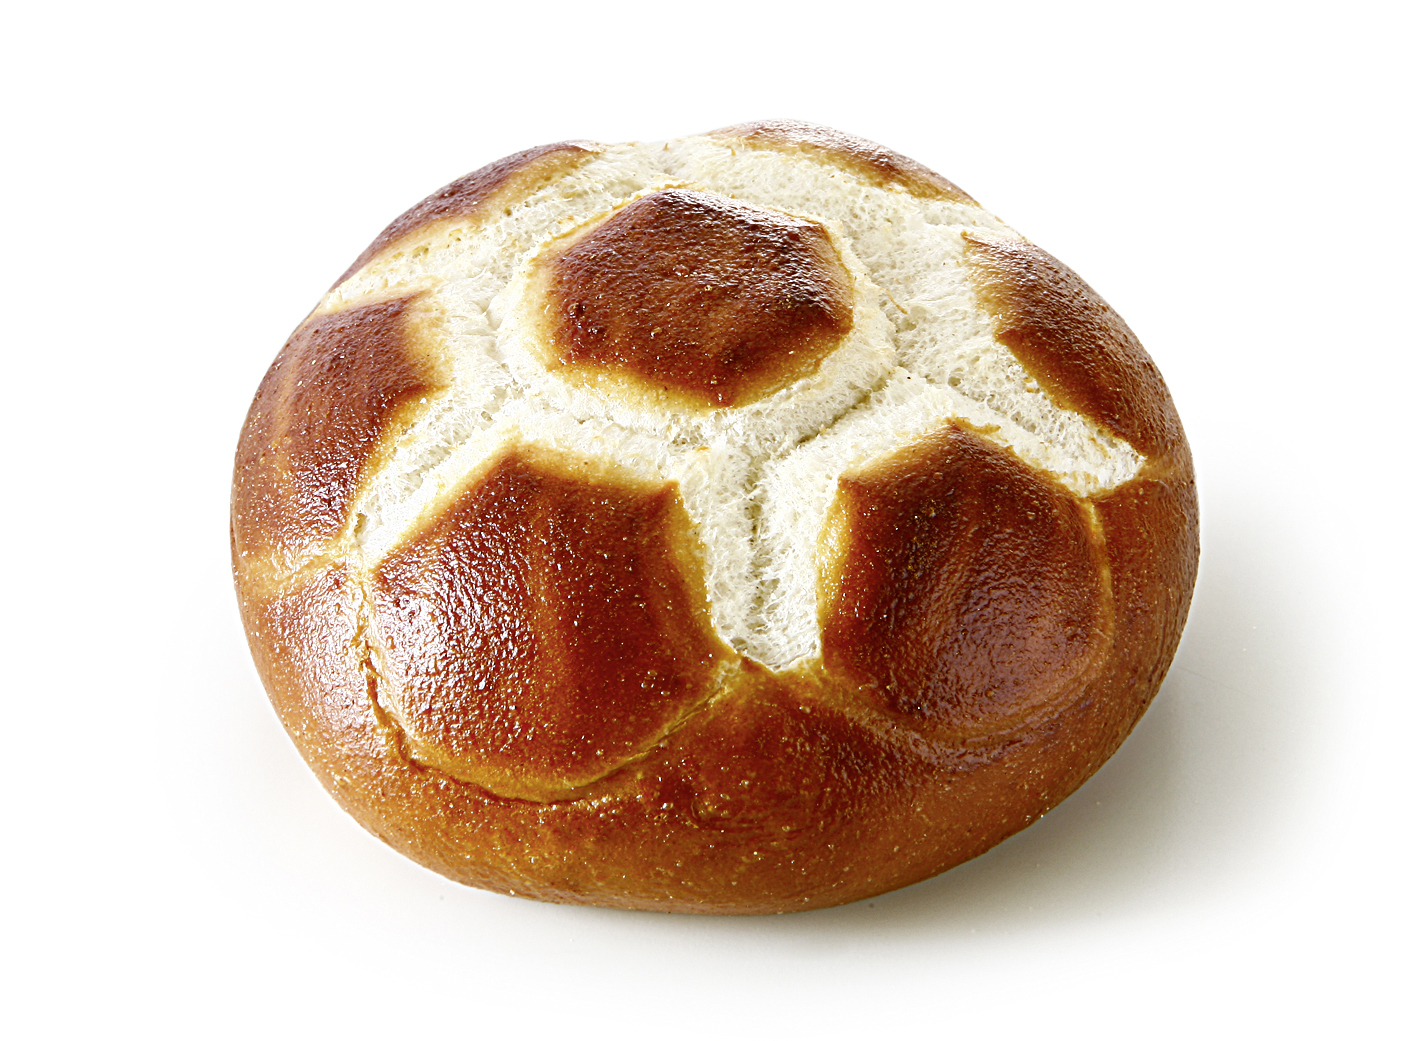 Pretzel-Football Roll - Lye bakery with soccer-stamp/ advice: to reach a better quality bake for 4 - 6 minutes at 190°C